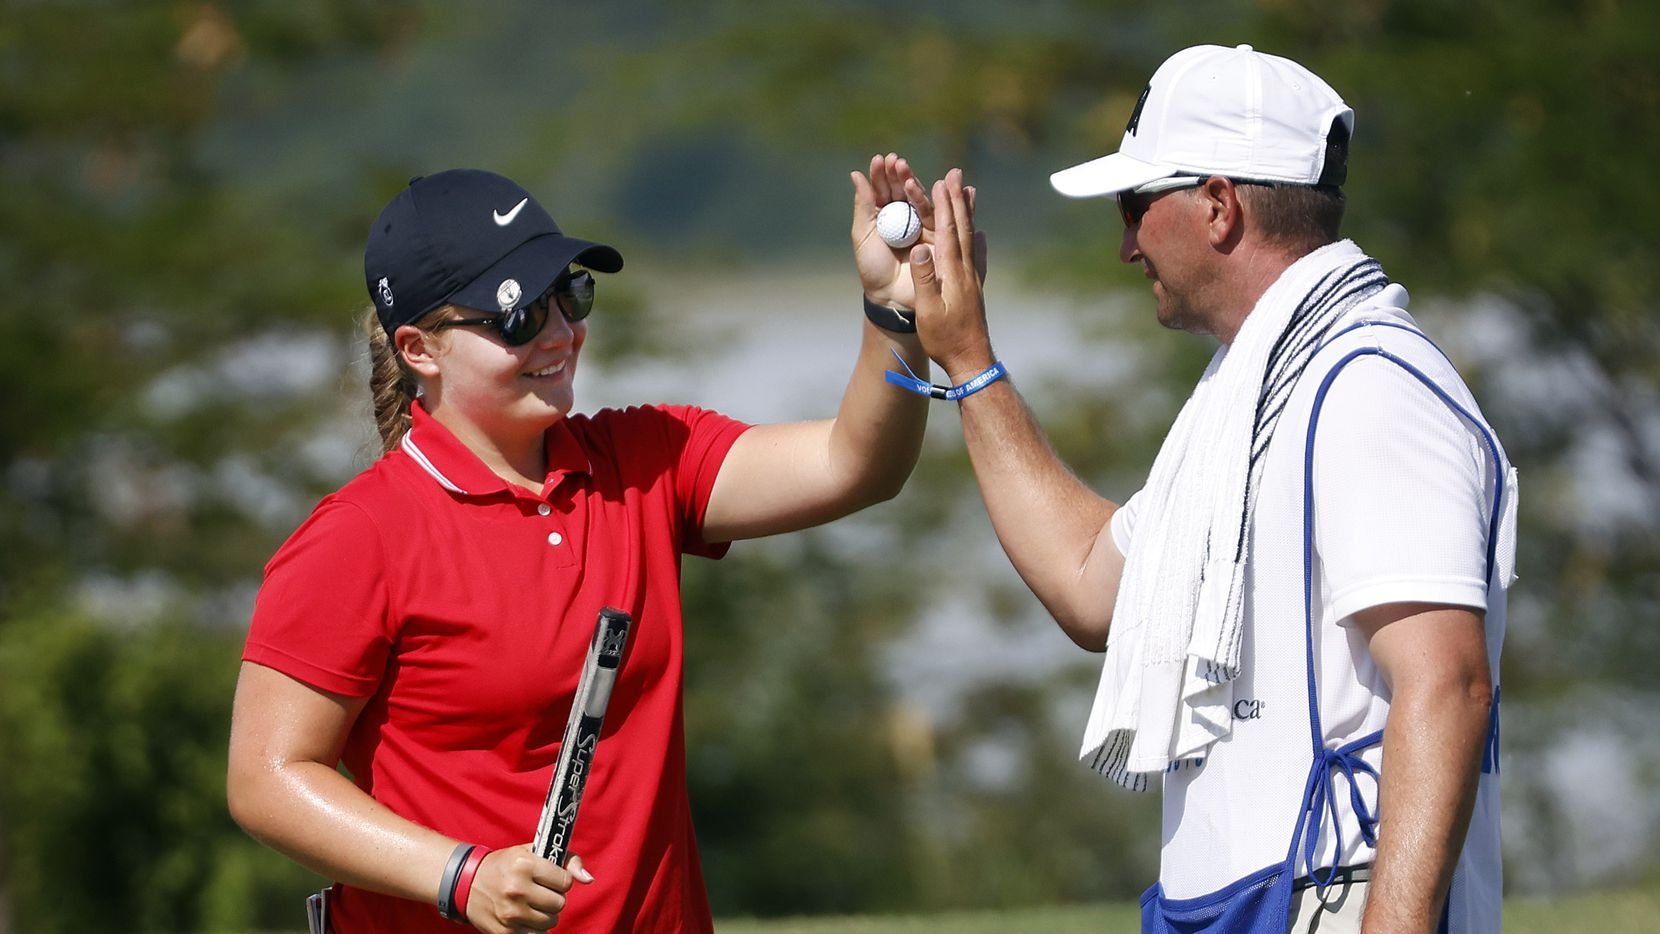 Amateur golfer Avery Zweig, 14, of McKinney (left) receives a high-five from her caddie Adam Golob after carding her first birdie of the LPGA VOA Classic at the Old American Golf Club in The Colony, Texas, Thursday, June 1, 2021. The putt came on No. 10 during the opening round.